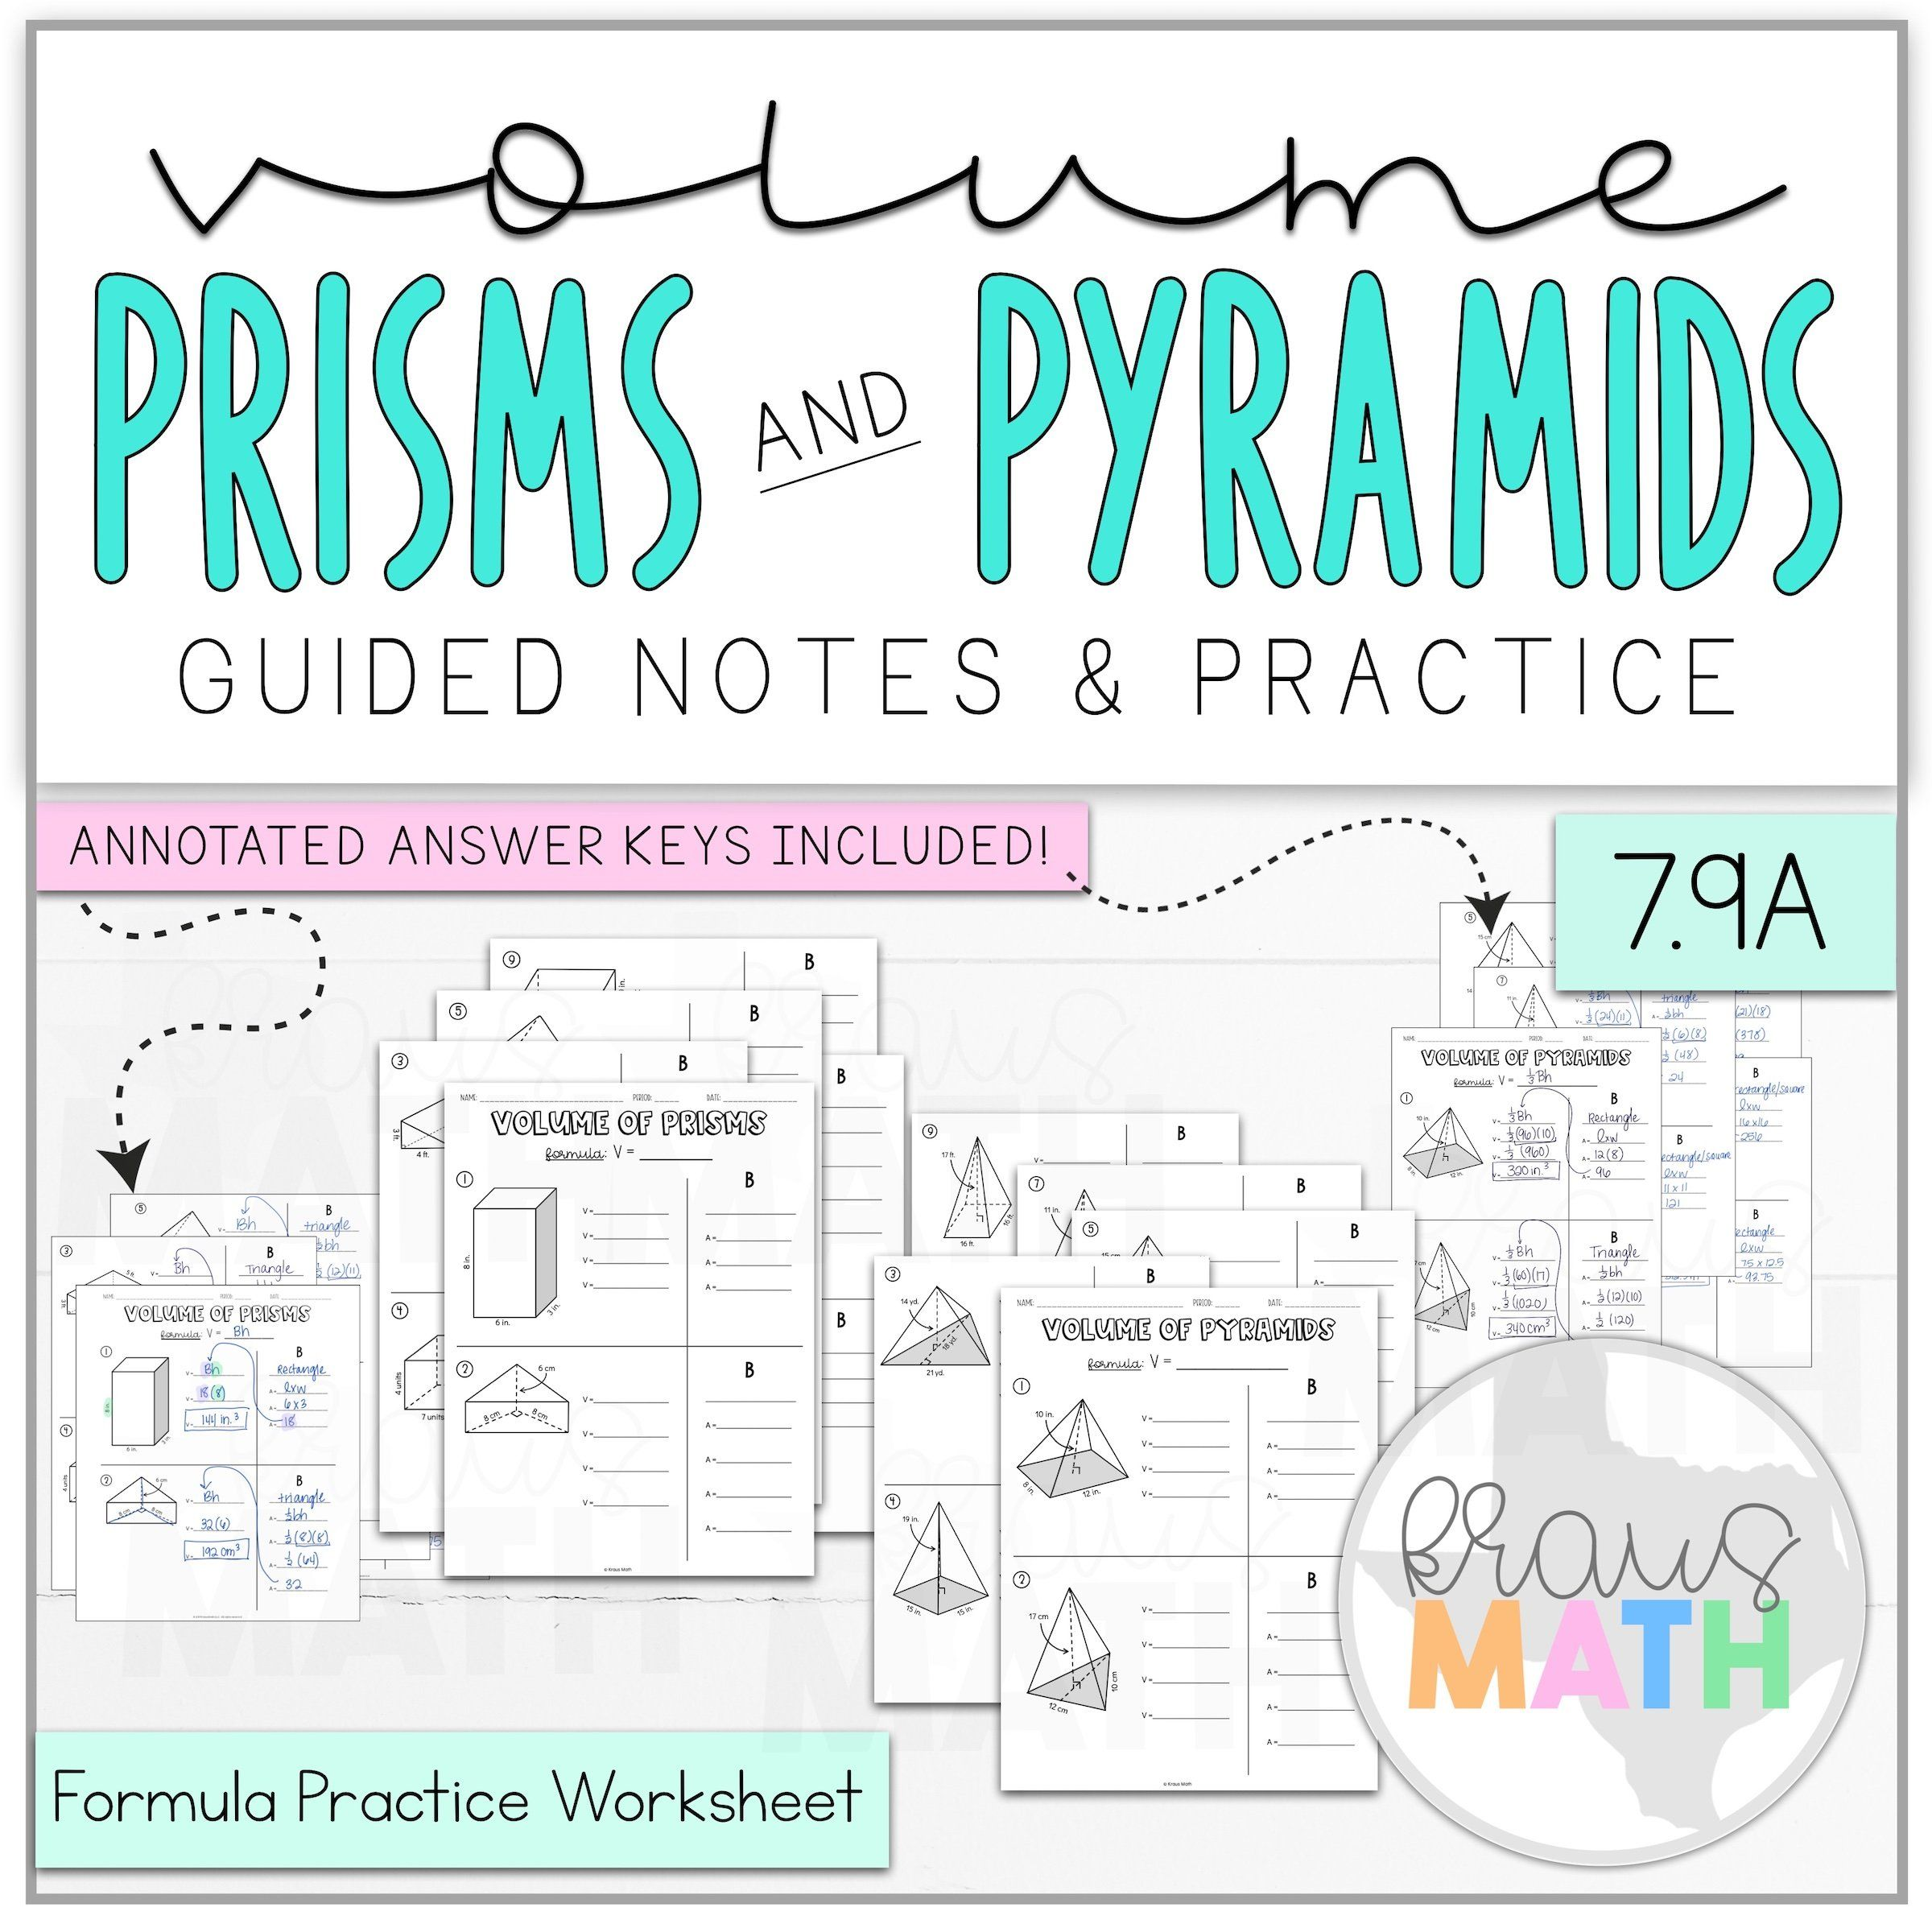 Volume Of Prisms And Pyramids Worksheets